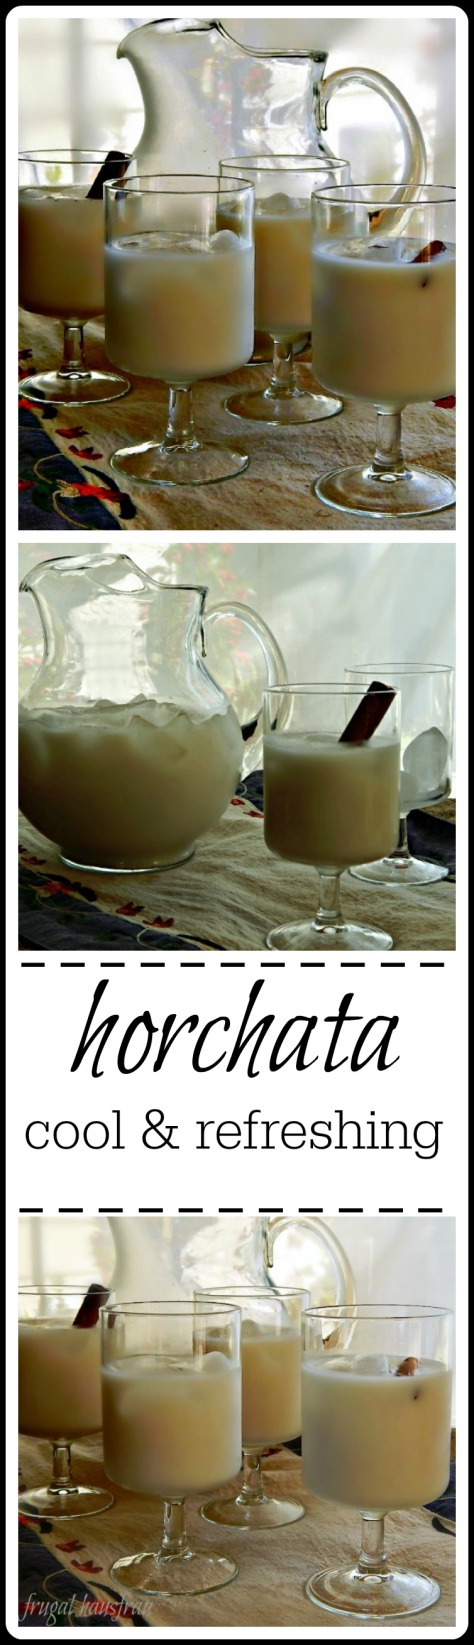 Horchata - a cool and refreshing aguas fresca. Pennies to make.